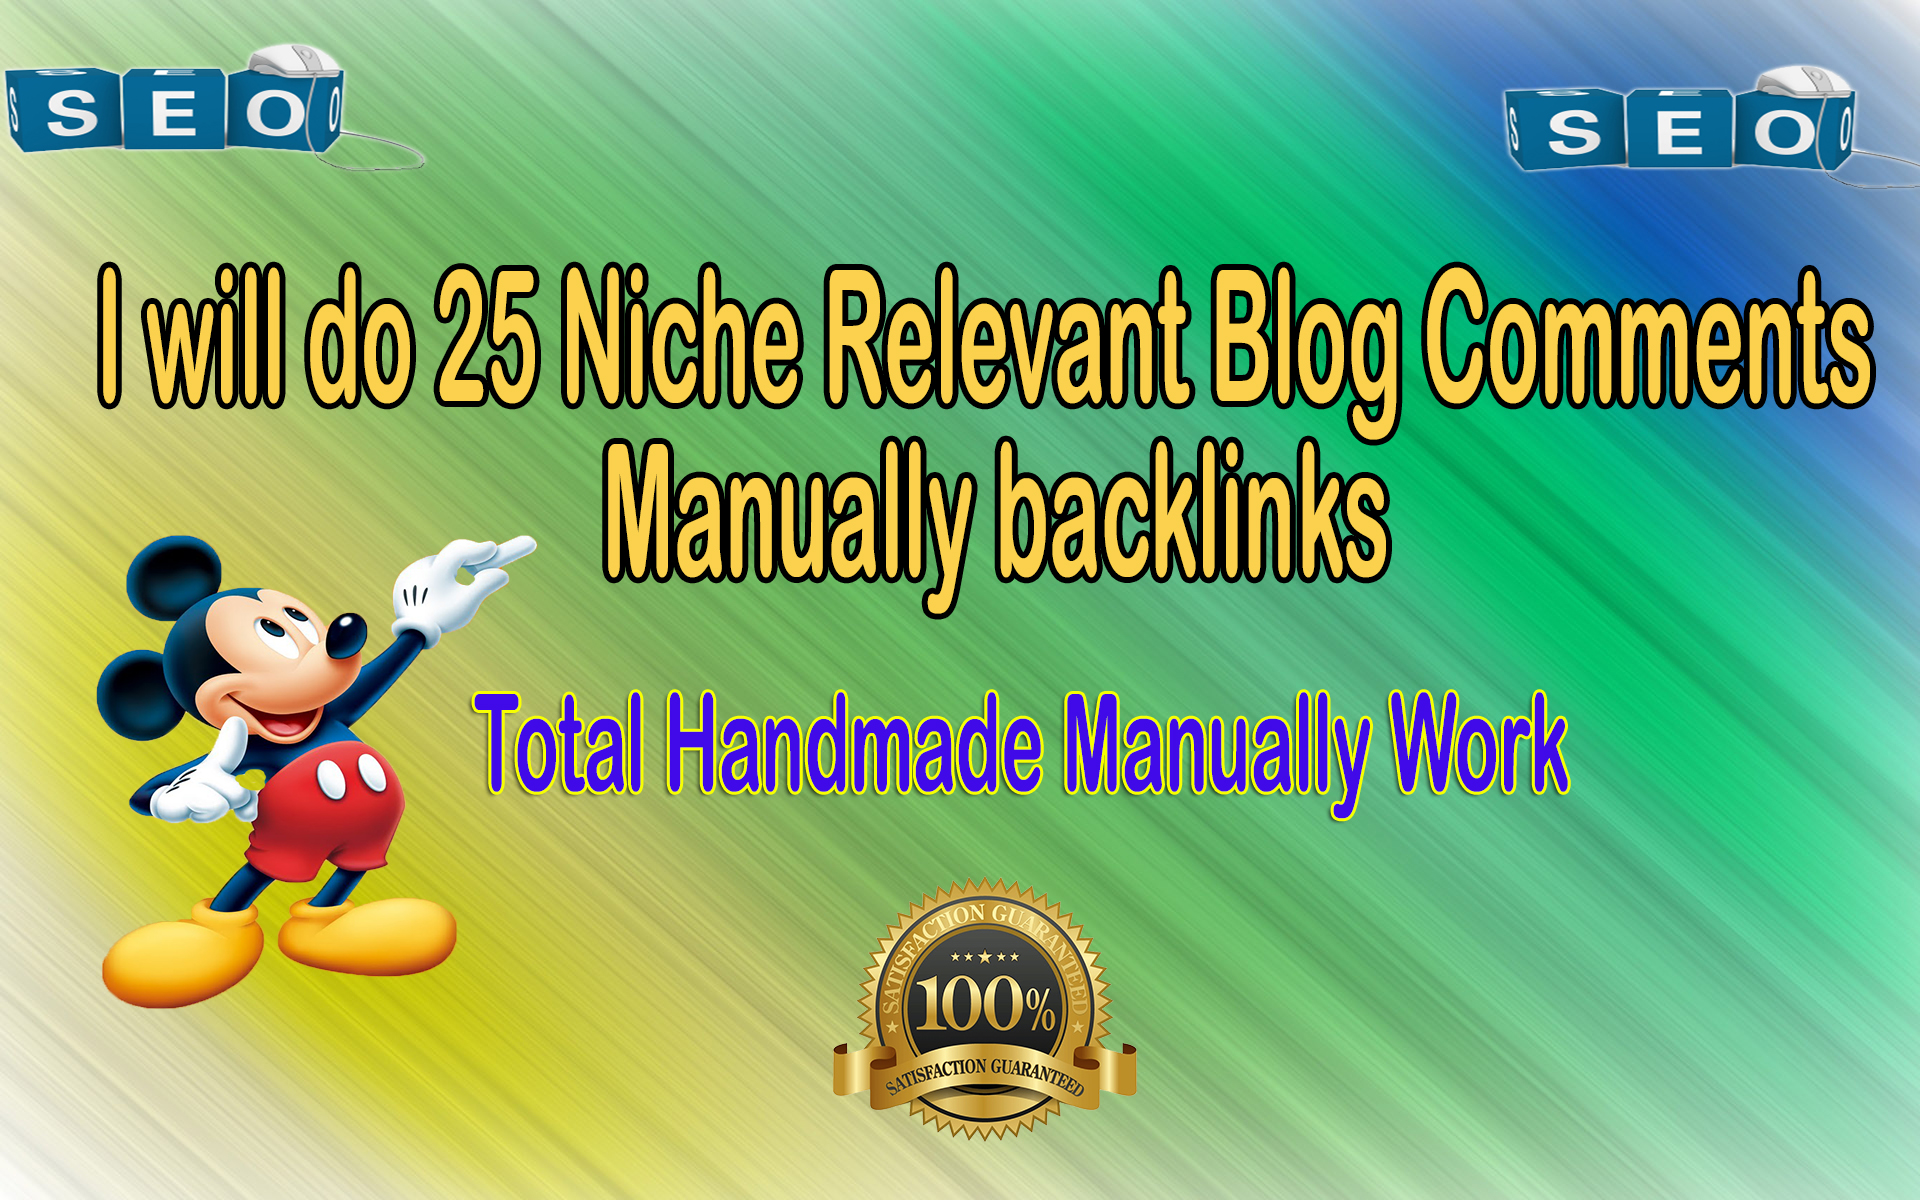 i will do25 Niche Relevant Blog comments Backlinks